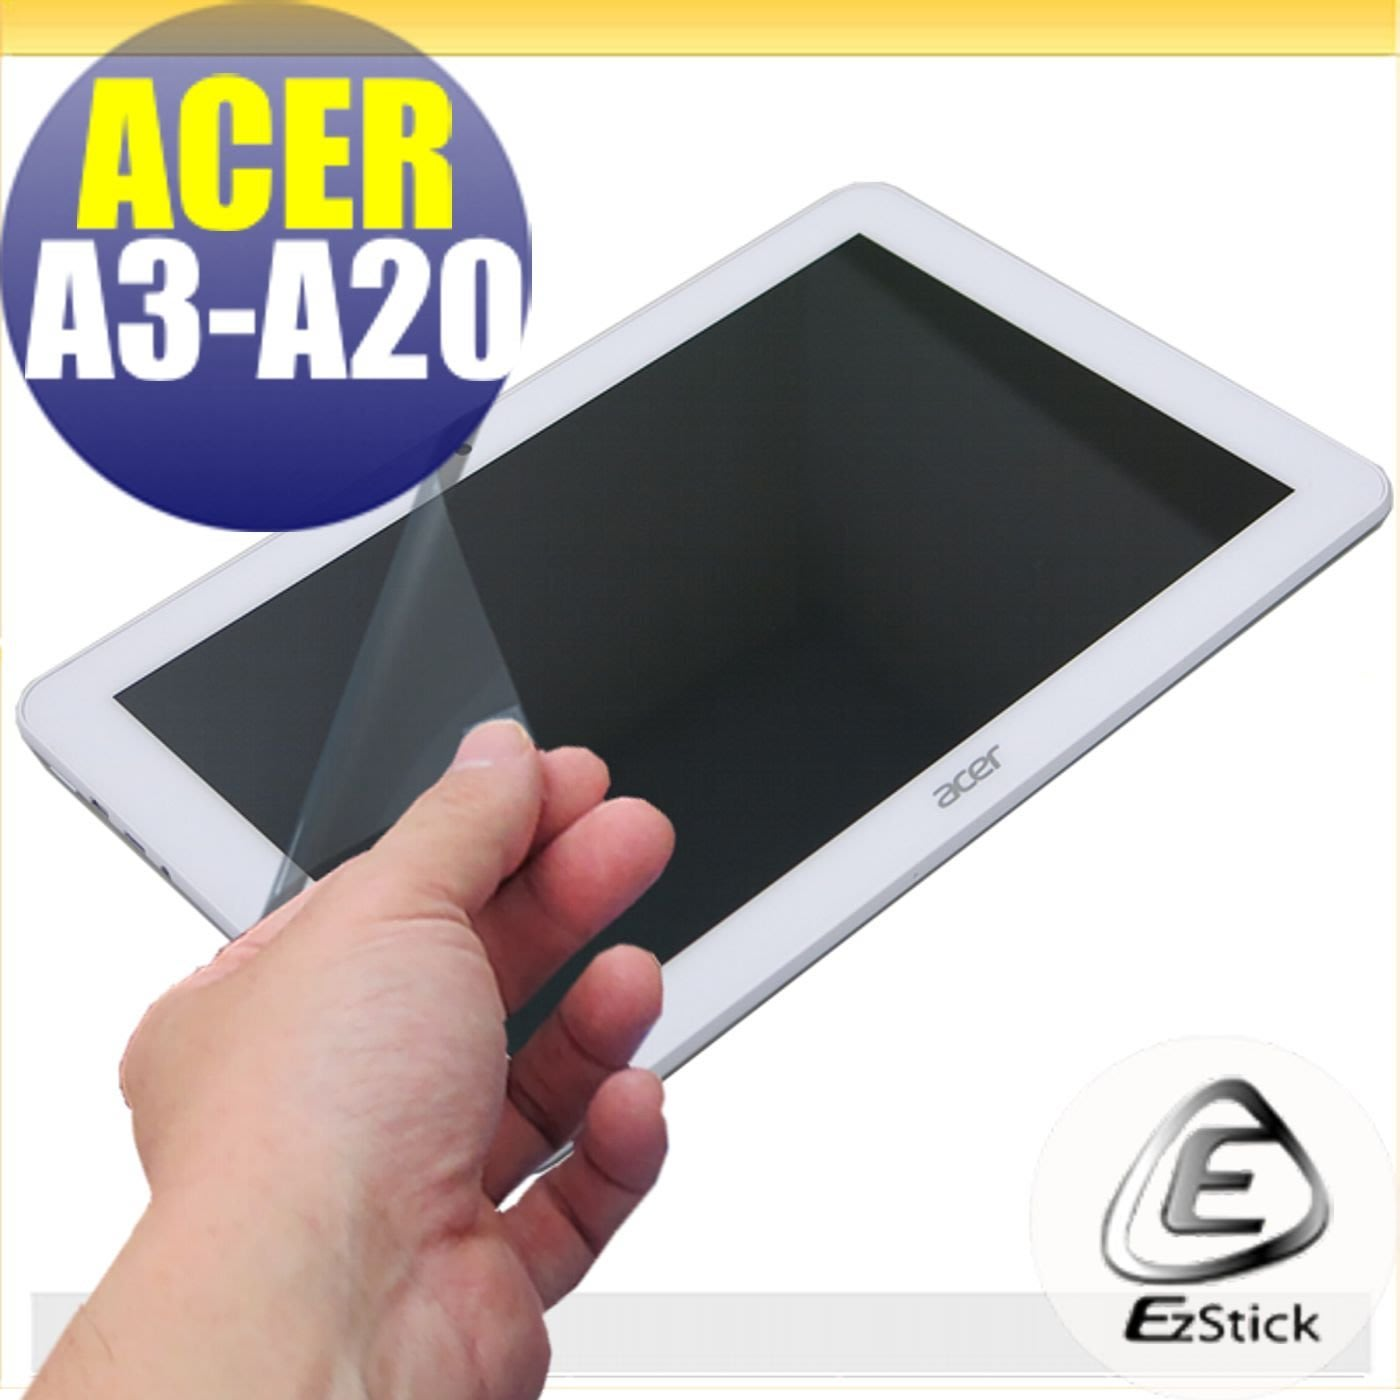 【EZstick】ACER Iconia Tab 10 A3-A20 FHD 靜電式平板LCD液晶螢幕貼